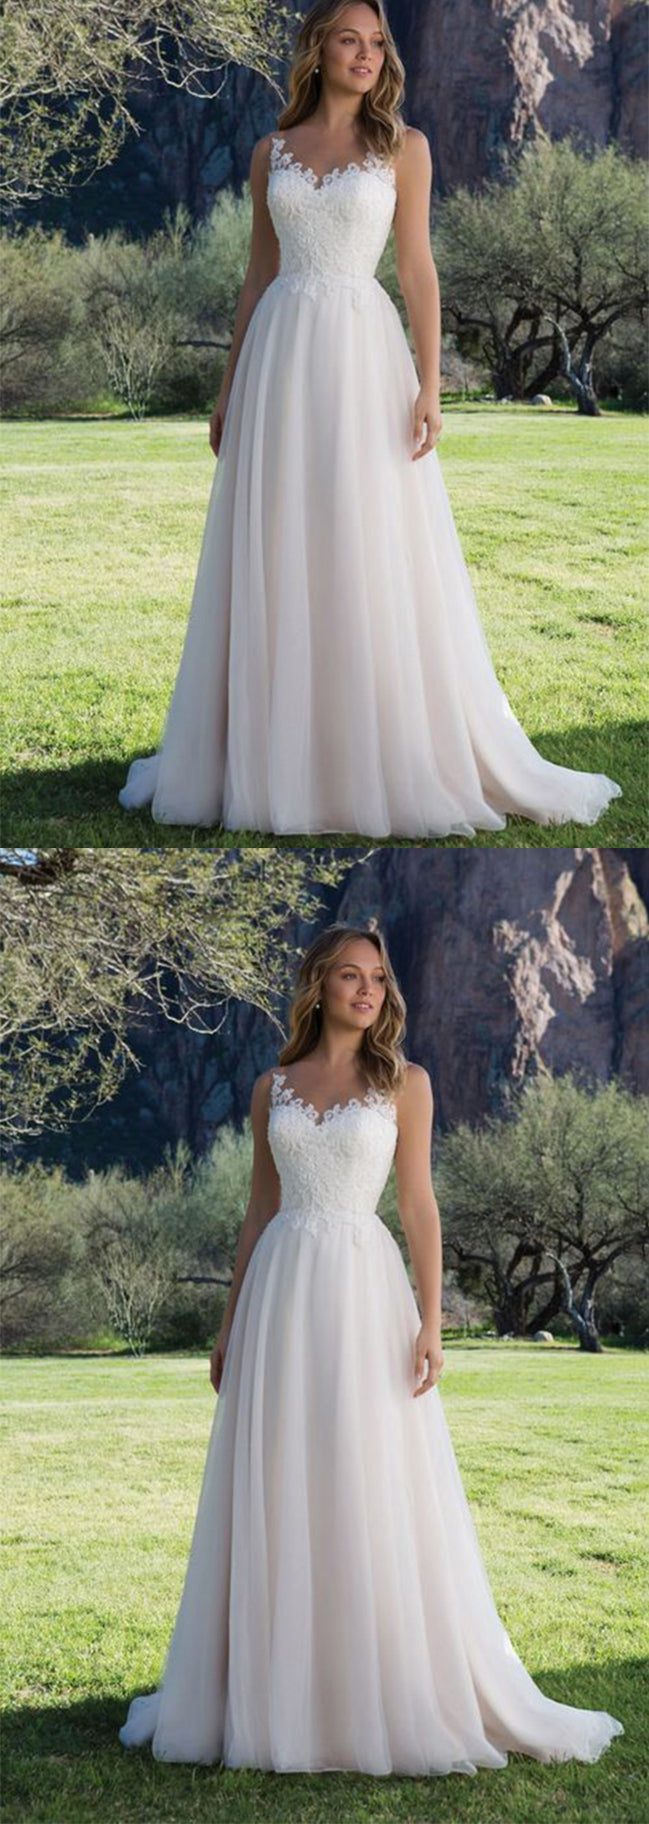 Charming Tulle Lace Sweetheart With Appliques Wedding Dress W316 - Ombreprom